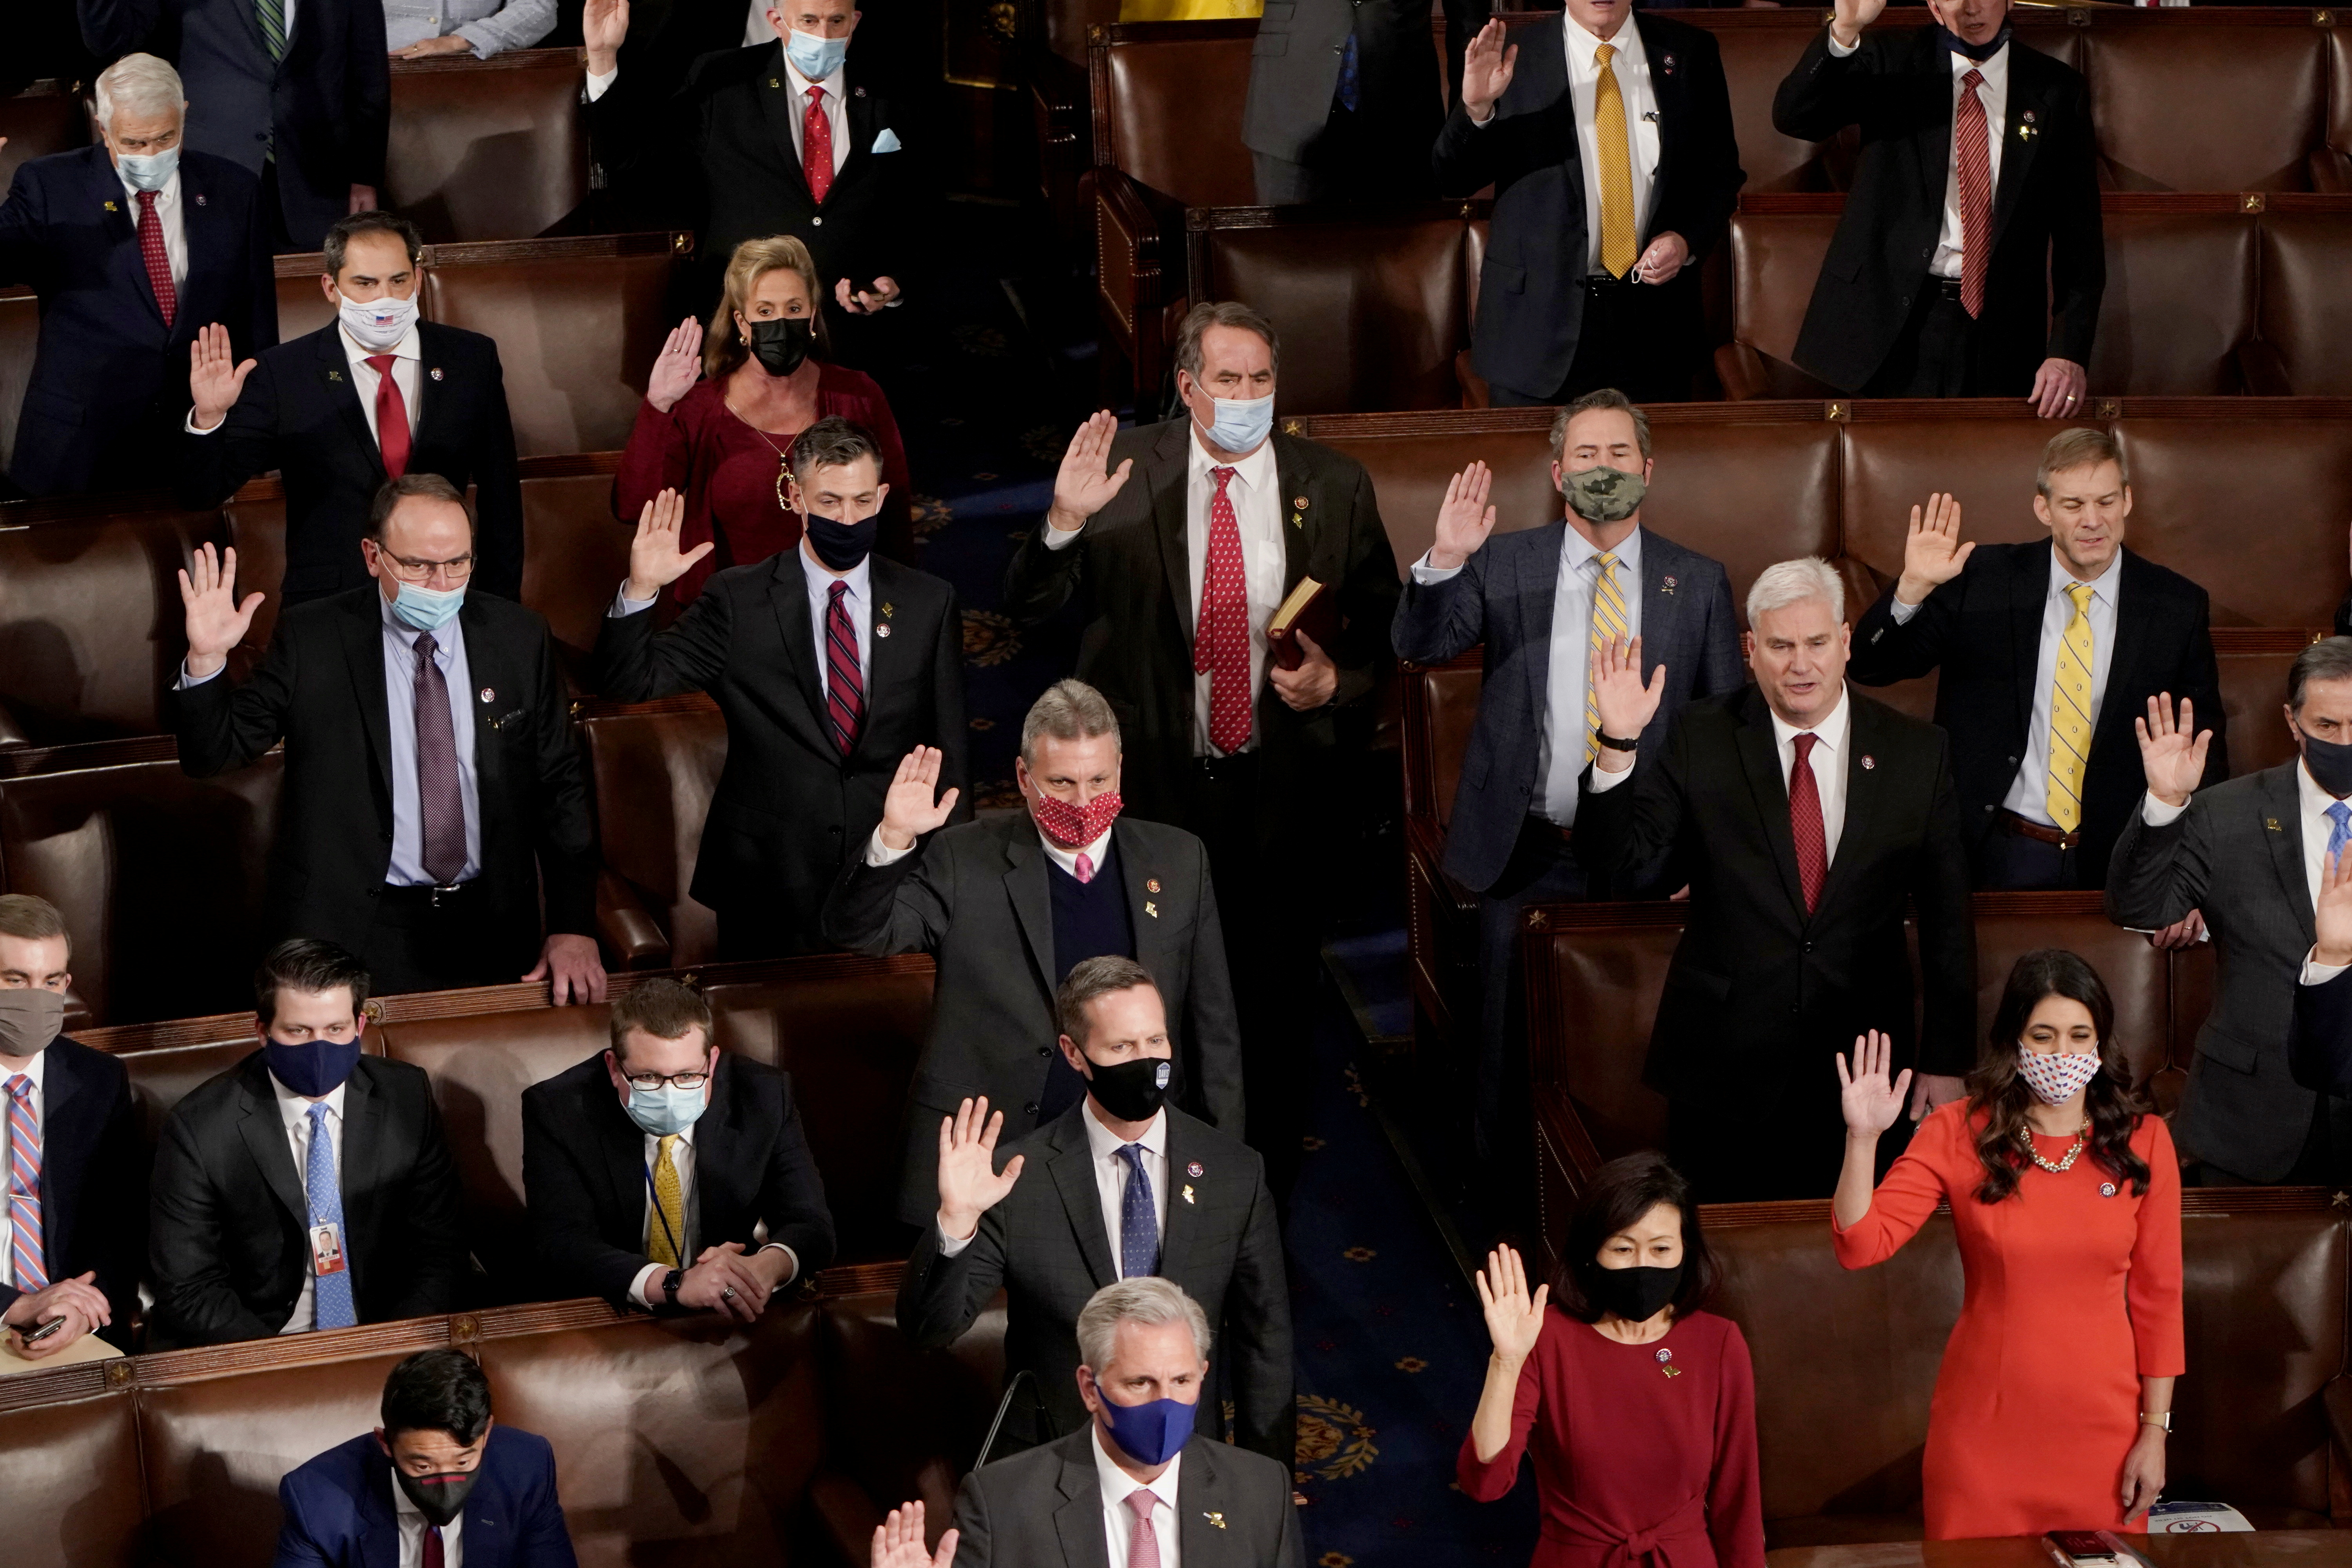 Republican members of the U.S. House of Representatives take their oath of office on the floor of the House Chamber during the first session of the 117th Congress on Capitol Hill in Washington, U.S., January 3, 2021.   REUTERS/Joshua Roberts     TPX IMAGES OF THE DAY